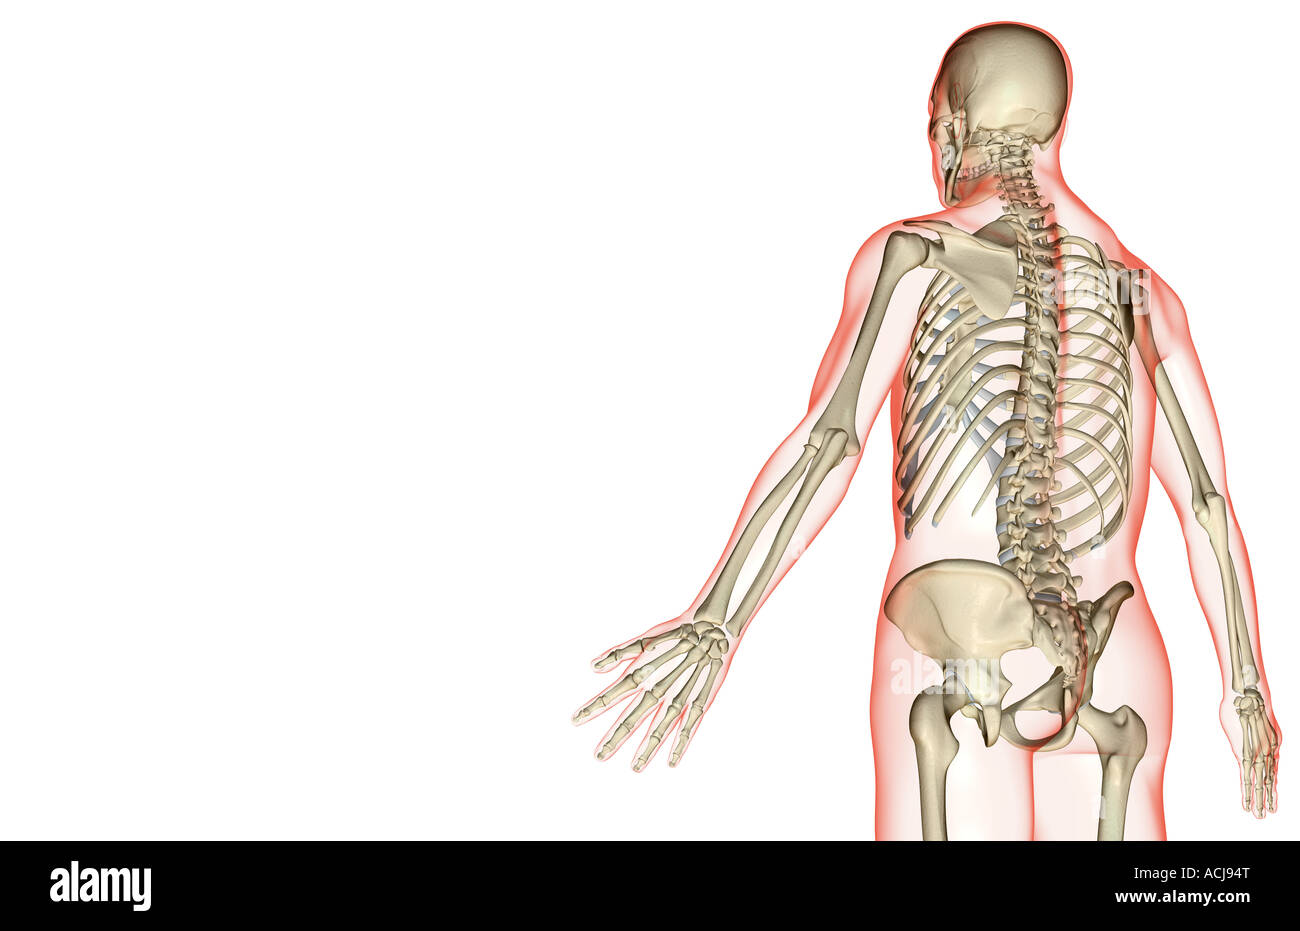 hight resolution of the bones of the upper body